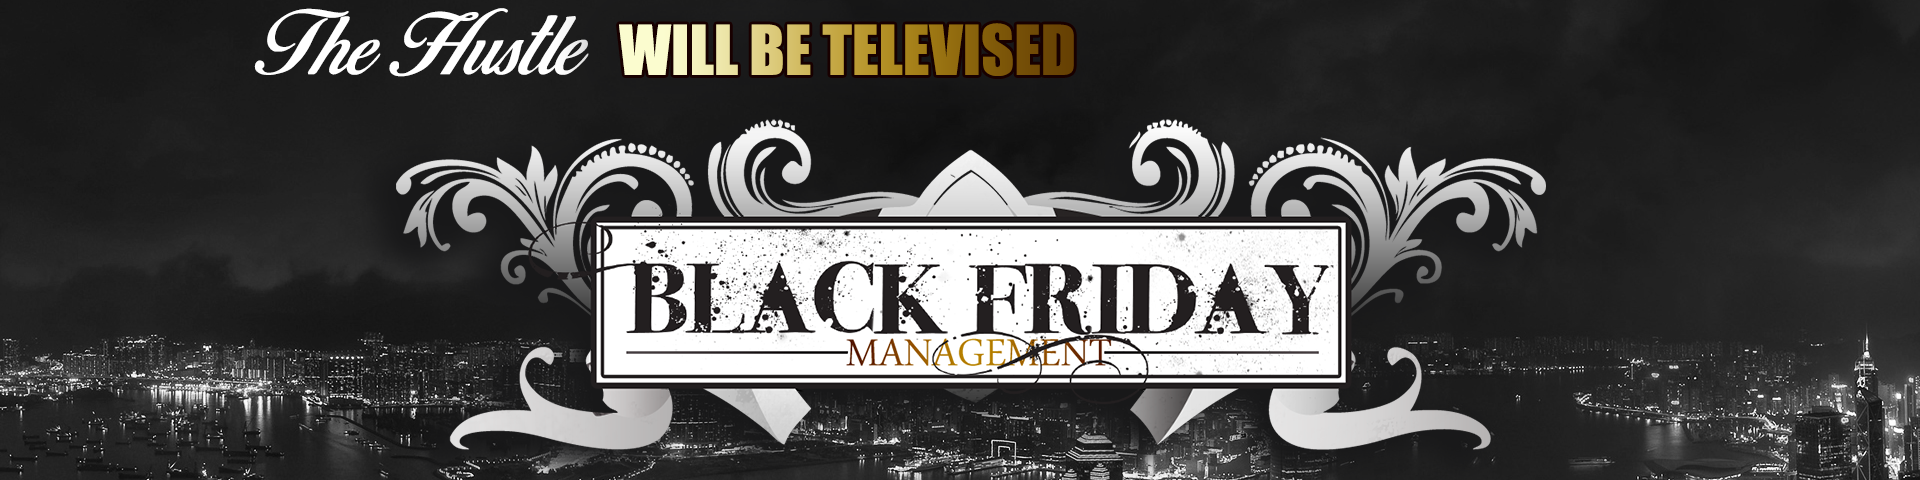 Black Friday Management